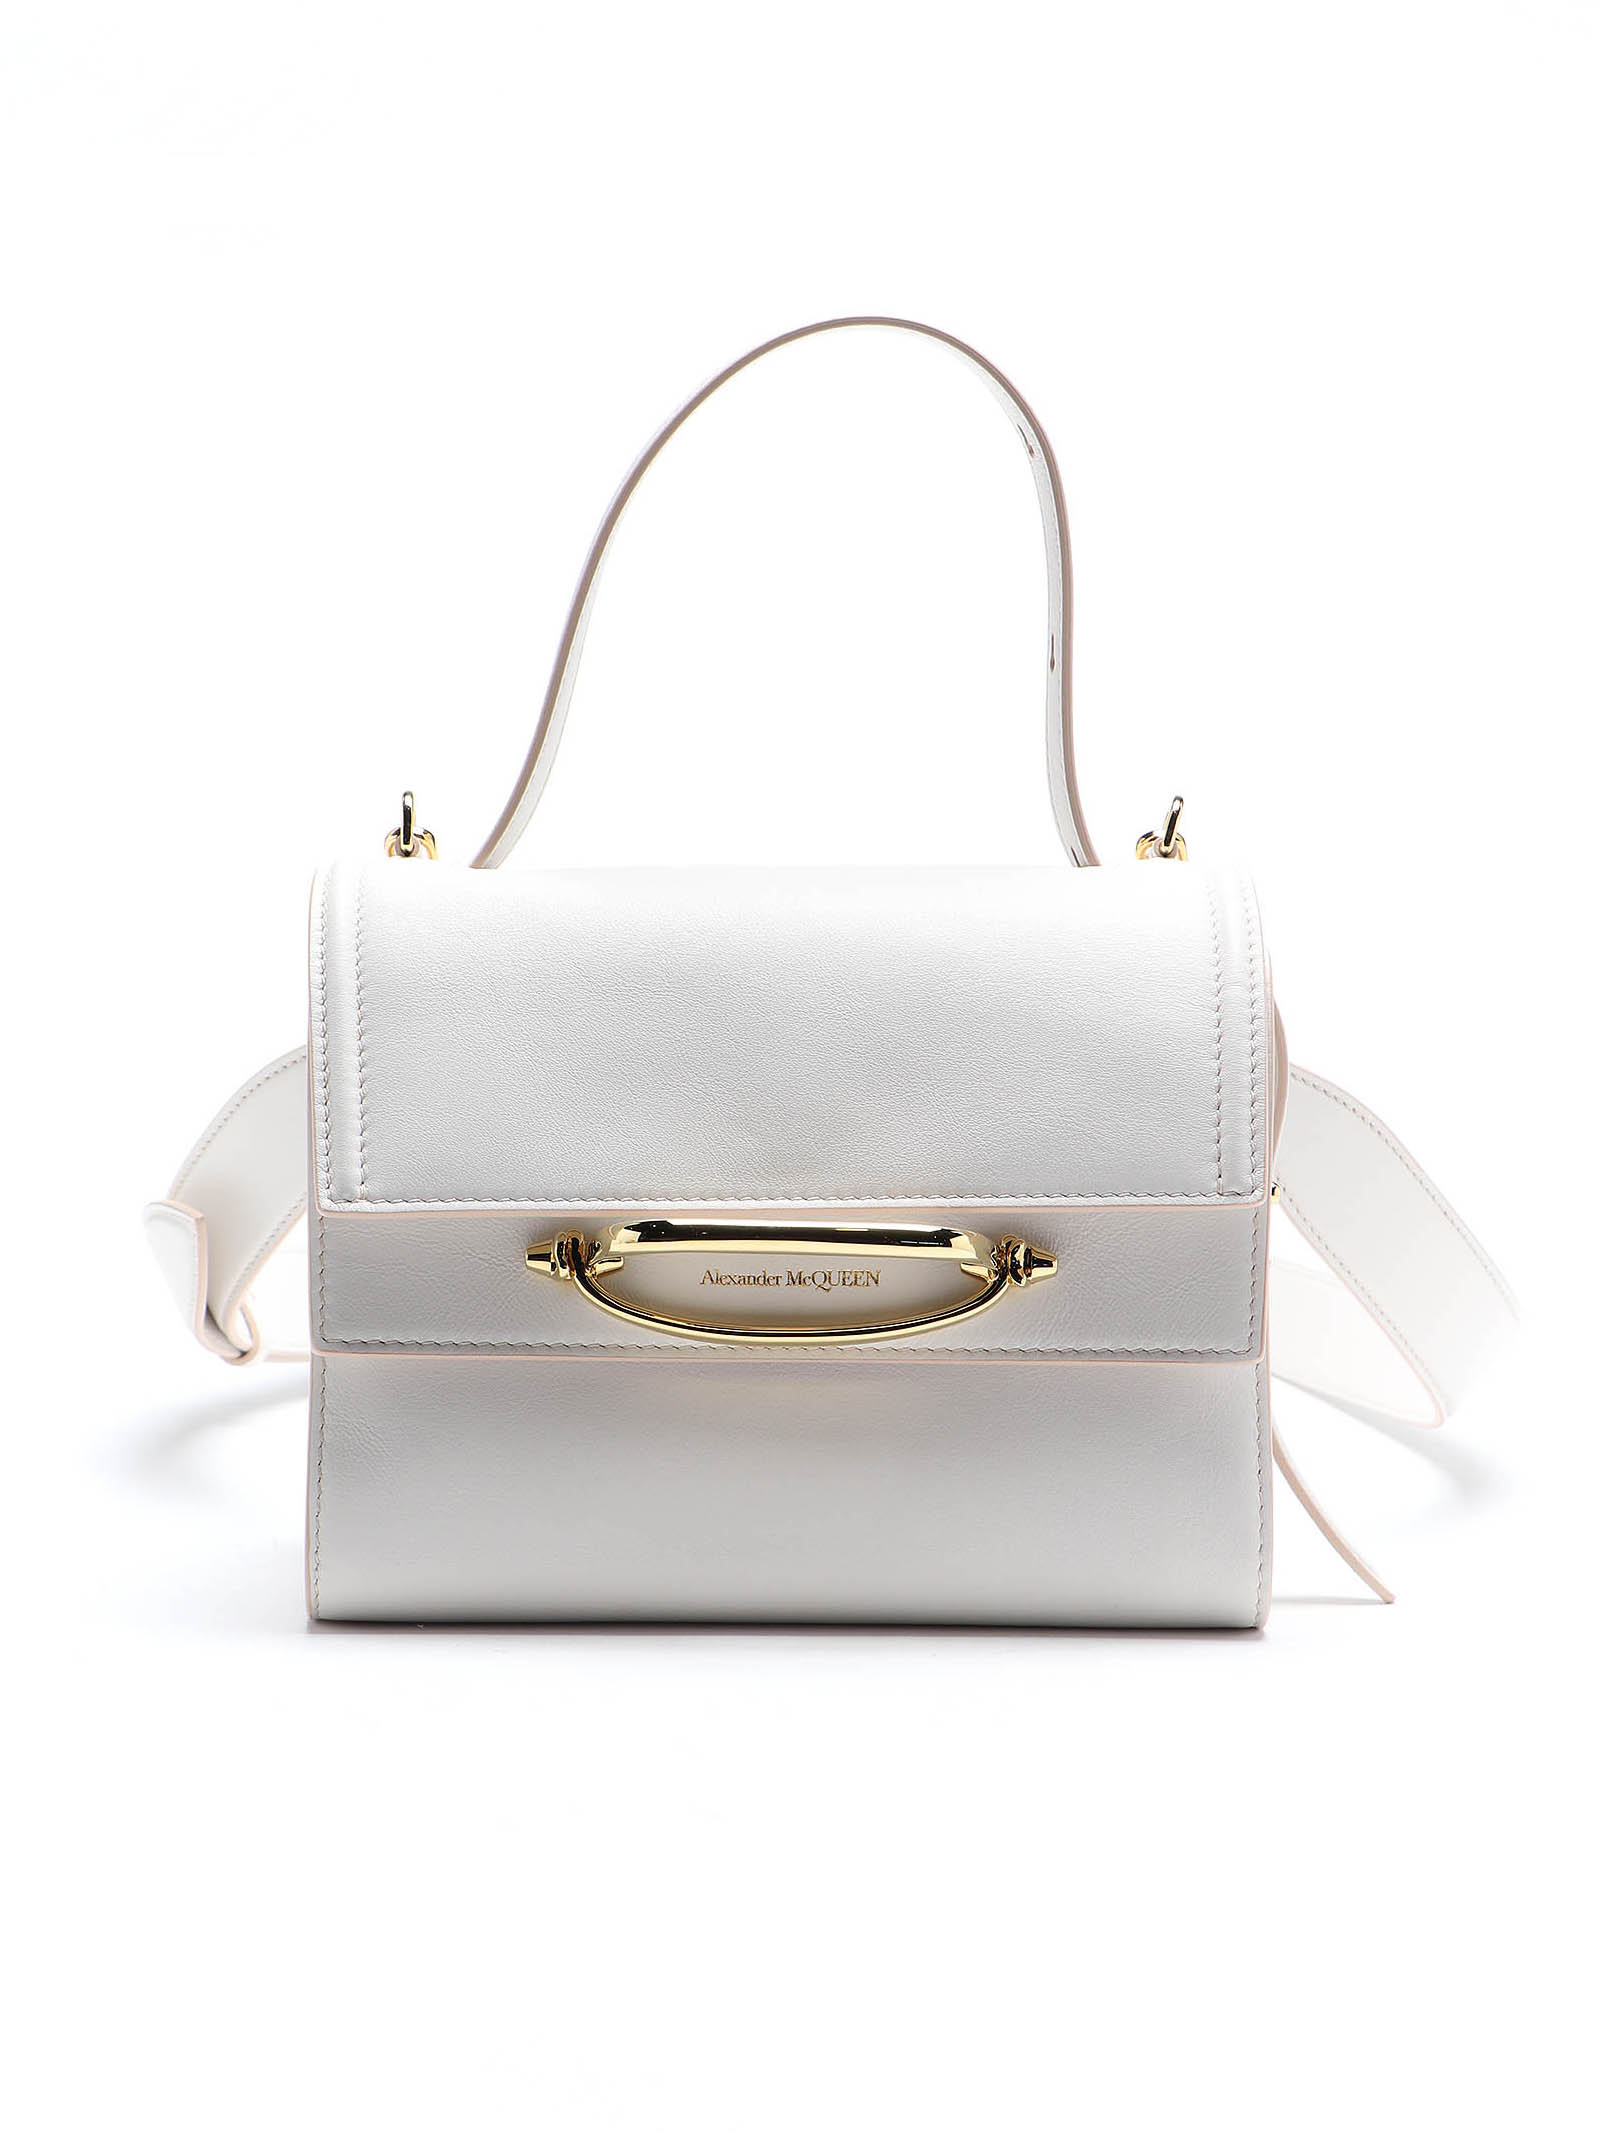 Picture of Alexander Mcqueen   Small Double Flap